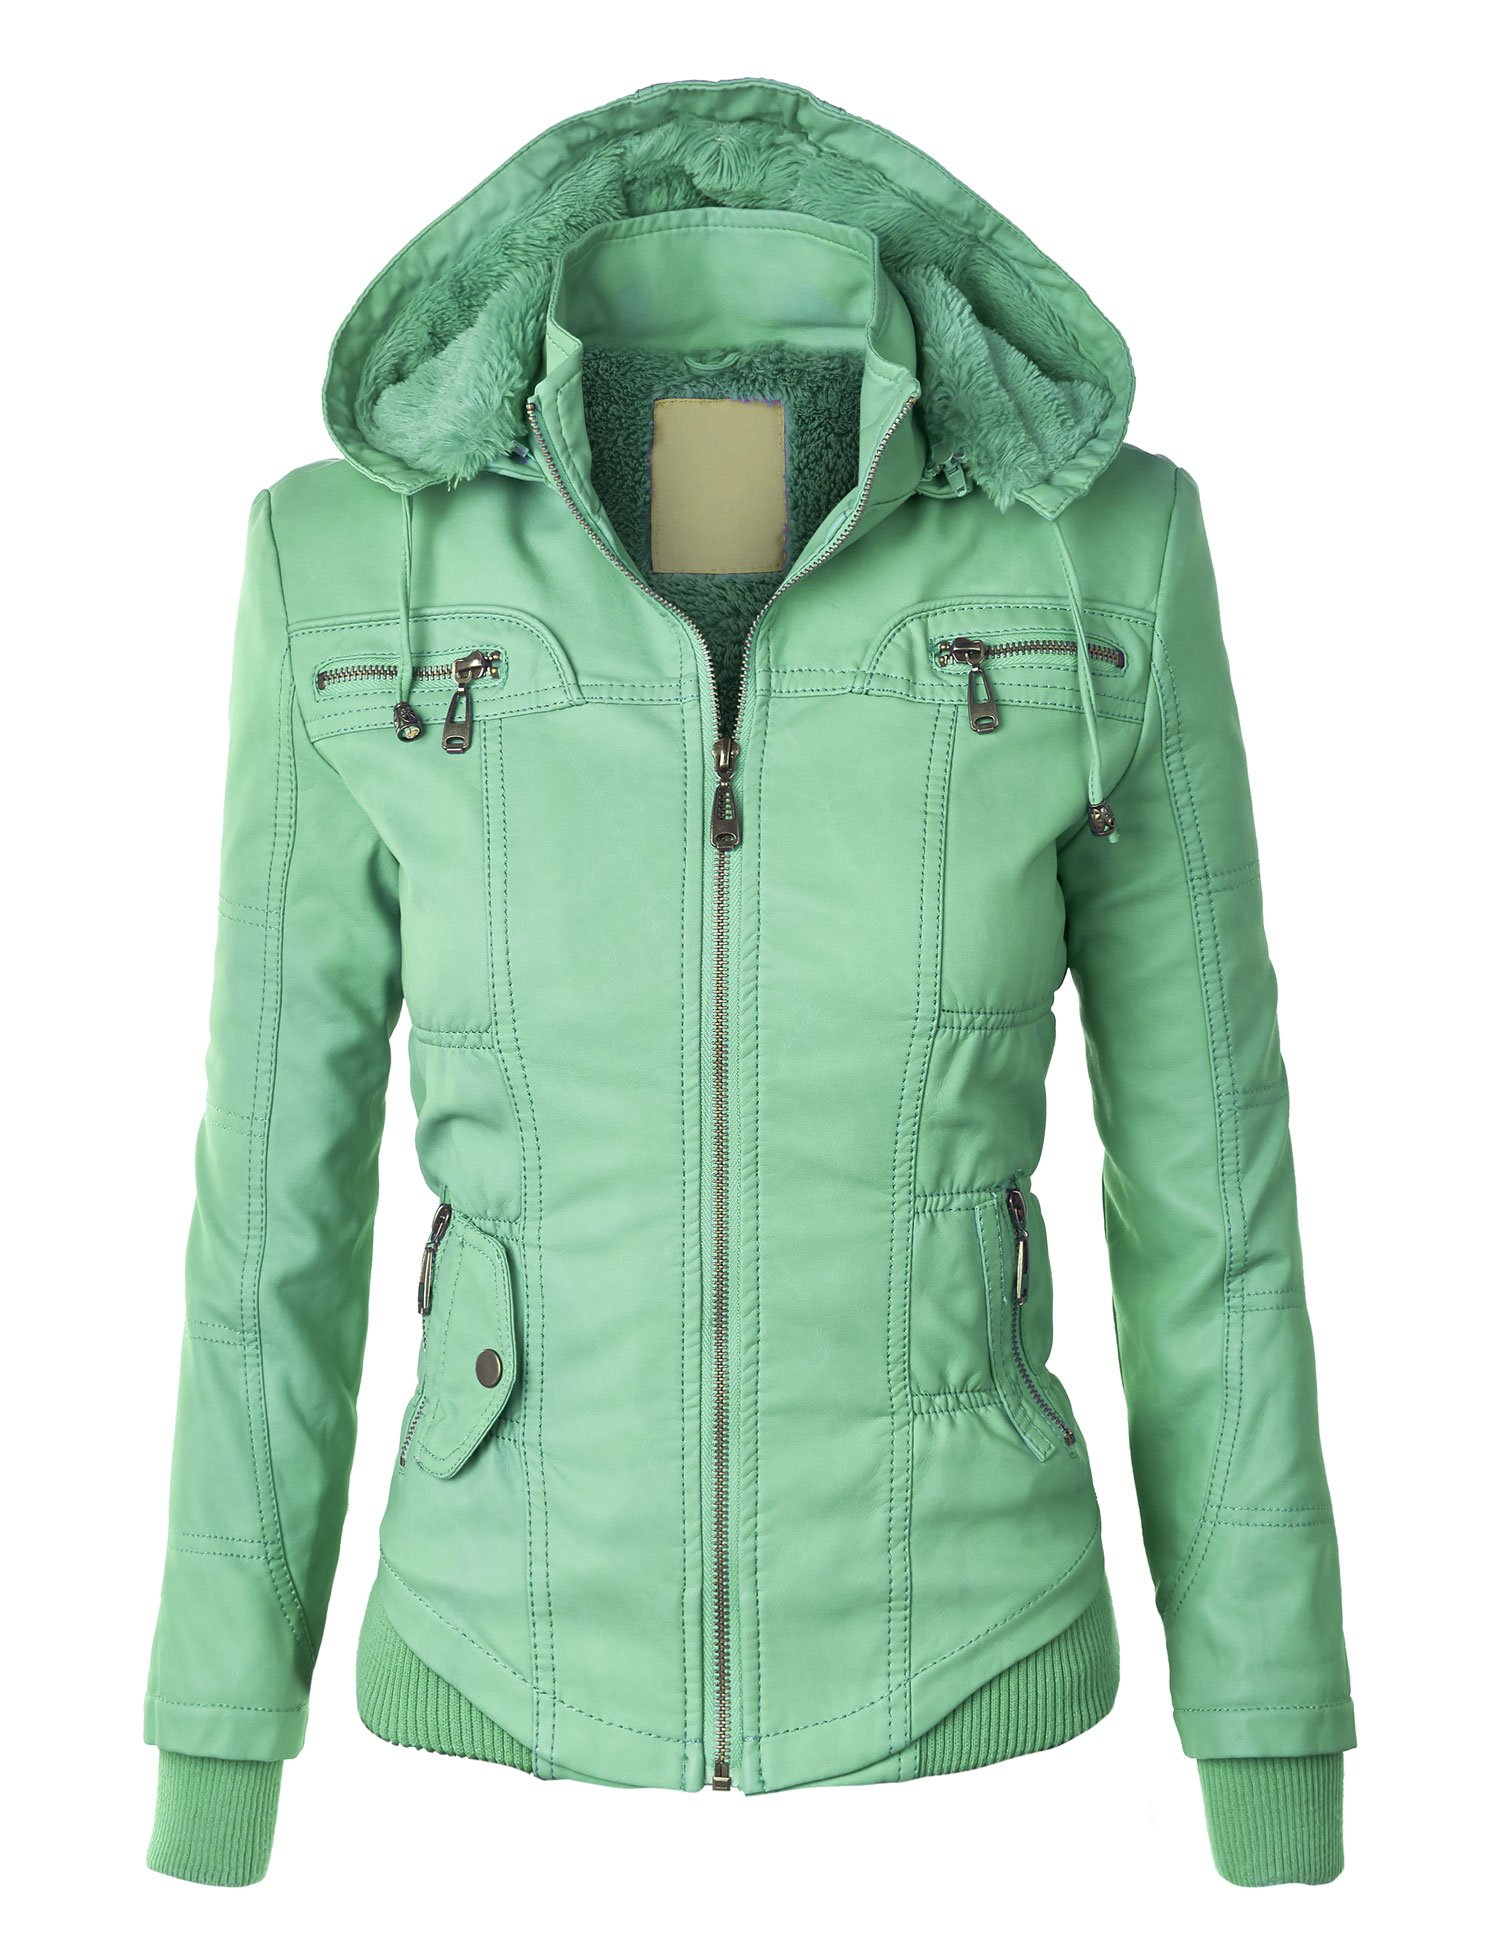 WJC858 Womens Faux Leather Zip Up Bomber Jacket with Hood XS Mint